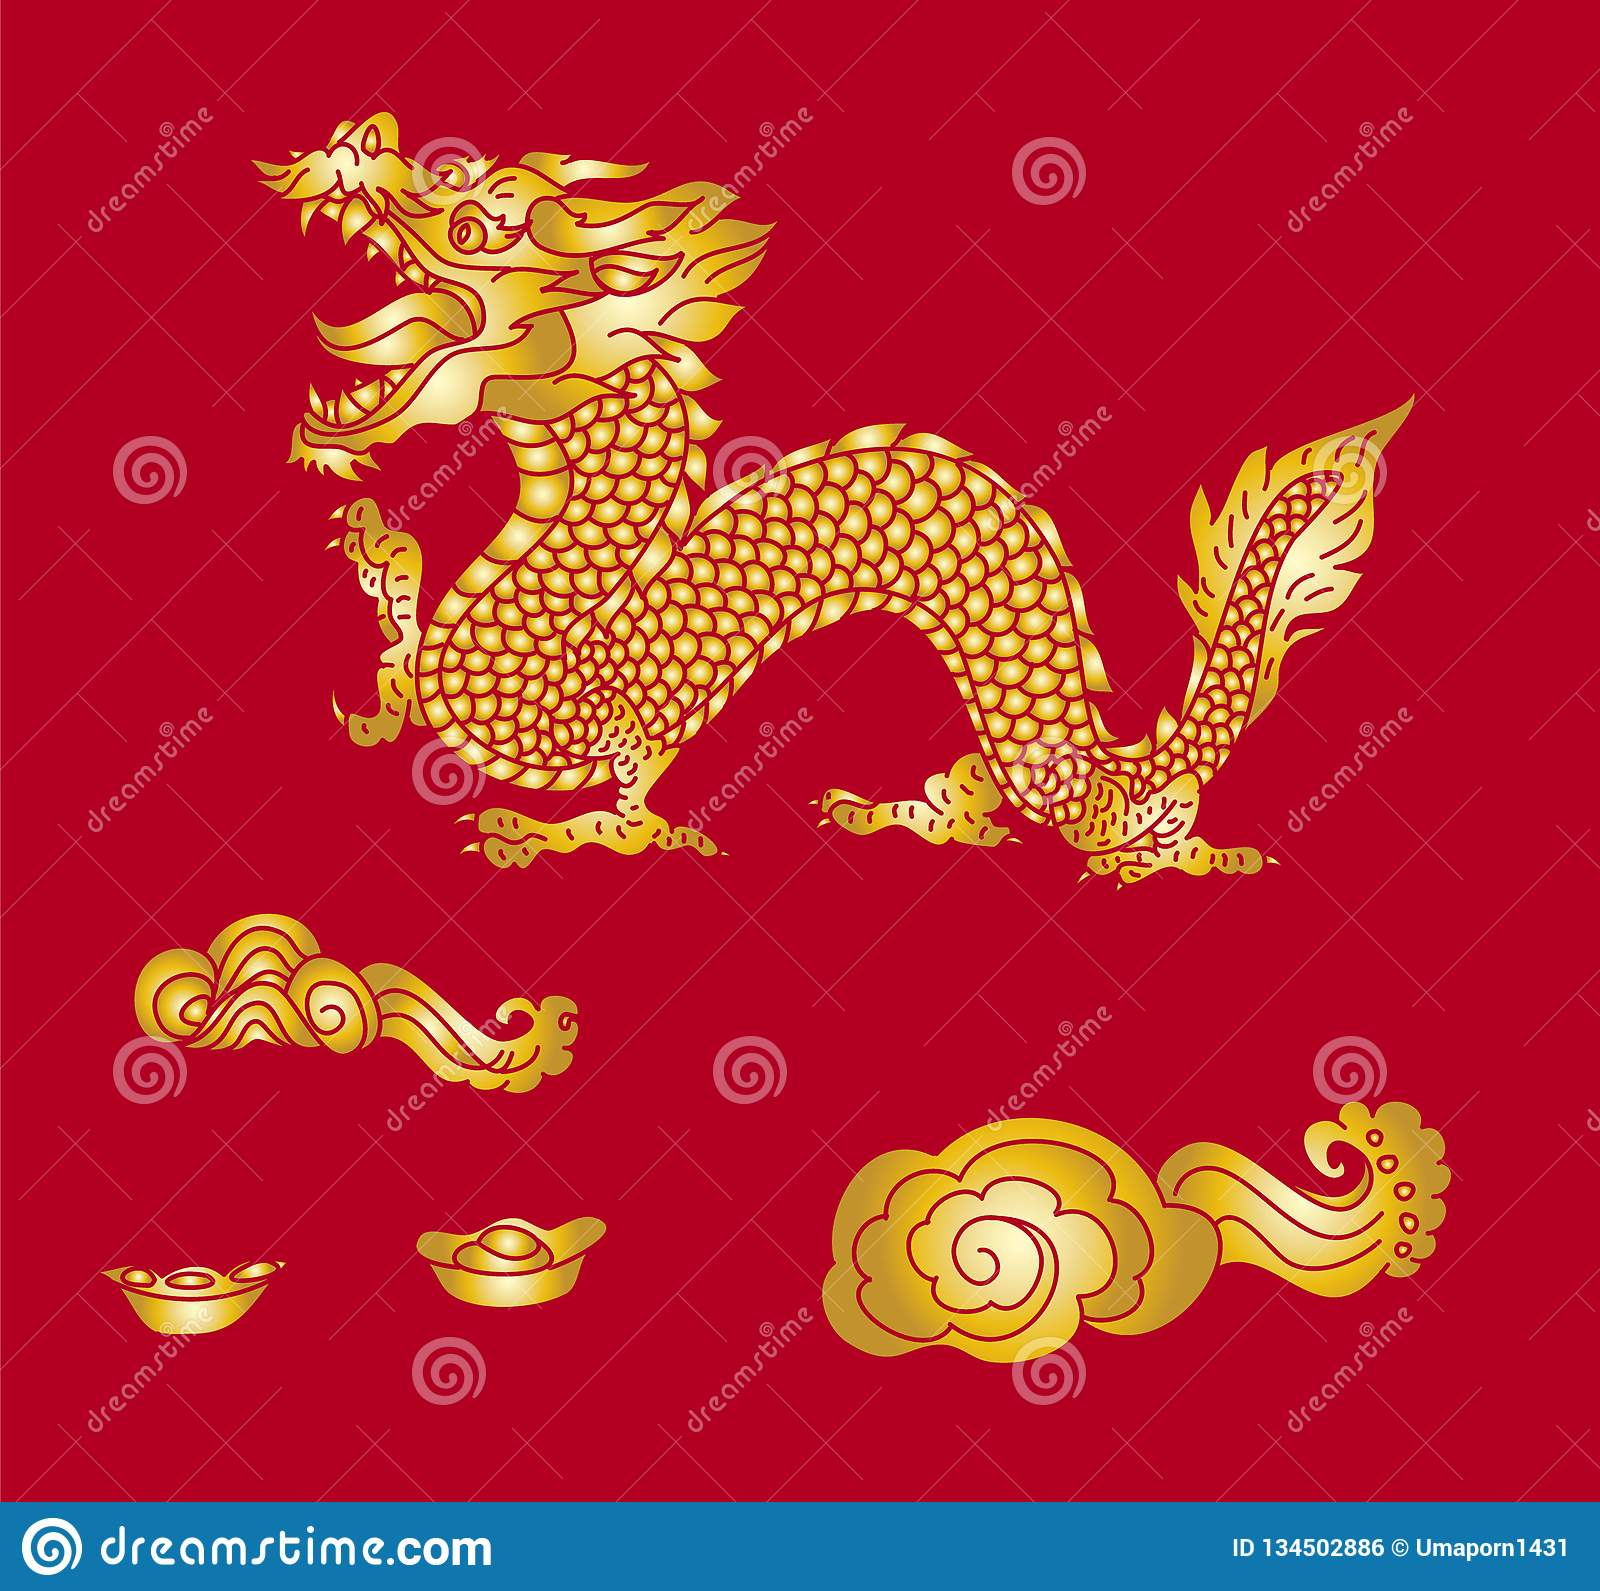 Japanese Dragon For Printing On Paper And For Tattoo Design